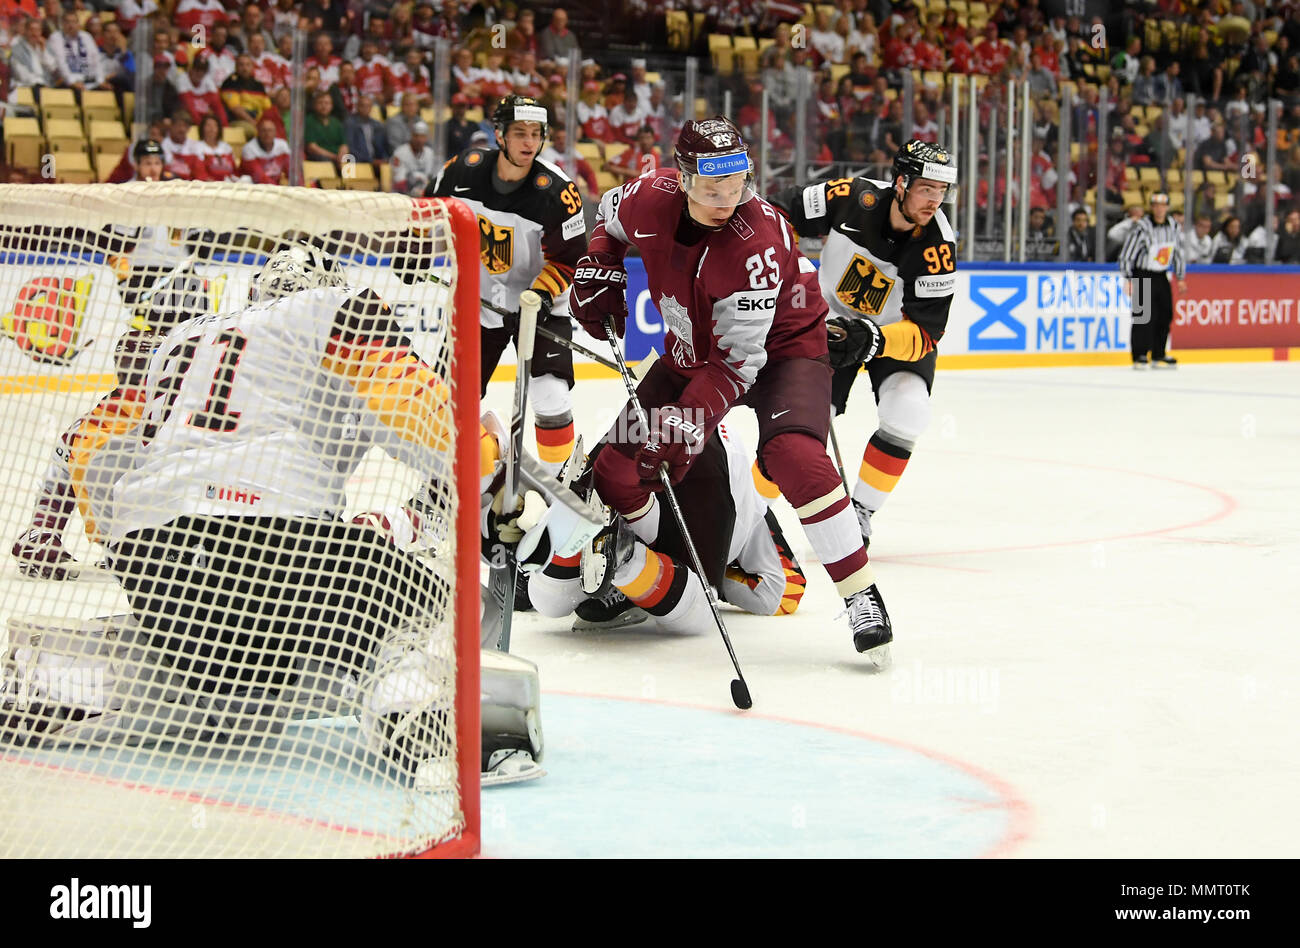 Herning, Denmark.. 12th May, 2018. (LR) Niklas Treutle, Frederik Tiffels of Team Germany, Andris Dzerins of Team Latvia and Marcel Noebels of Team Germany during the match between Latvia and Germany on 12.05.2018 in Herning, Denmark. (Photo by Marco Leipold/City-Press GbR) | usage worldwide Credit: dpa picture alliance/Alamy Live News Stock Photo